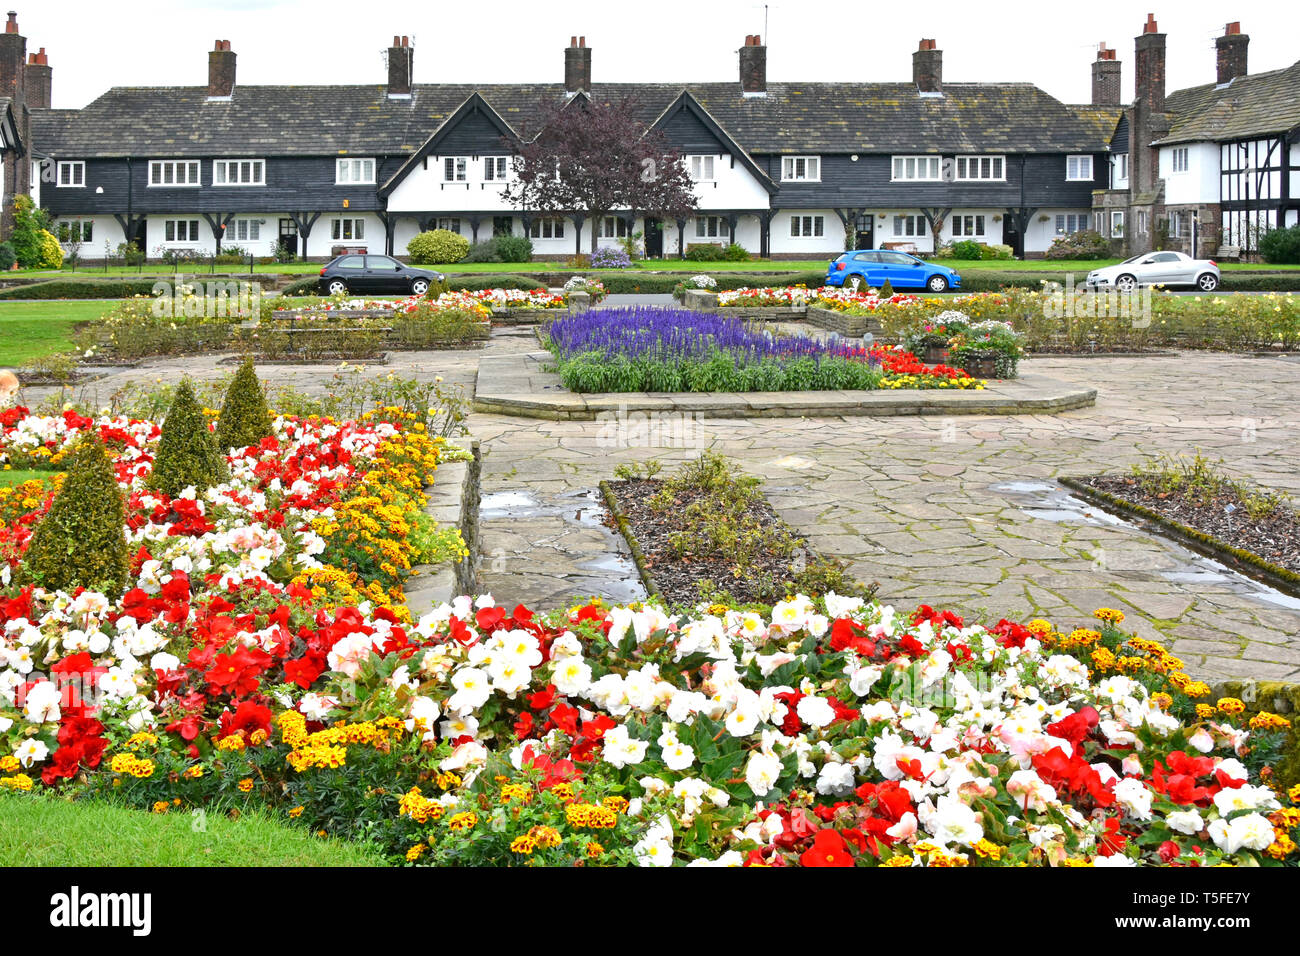 Terraced housing in Port Sunlight model village flowers in public garden all built by Lever Brothers for factory workers  Wirral Merseyside England UK - Stock Image